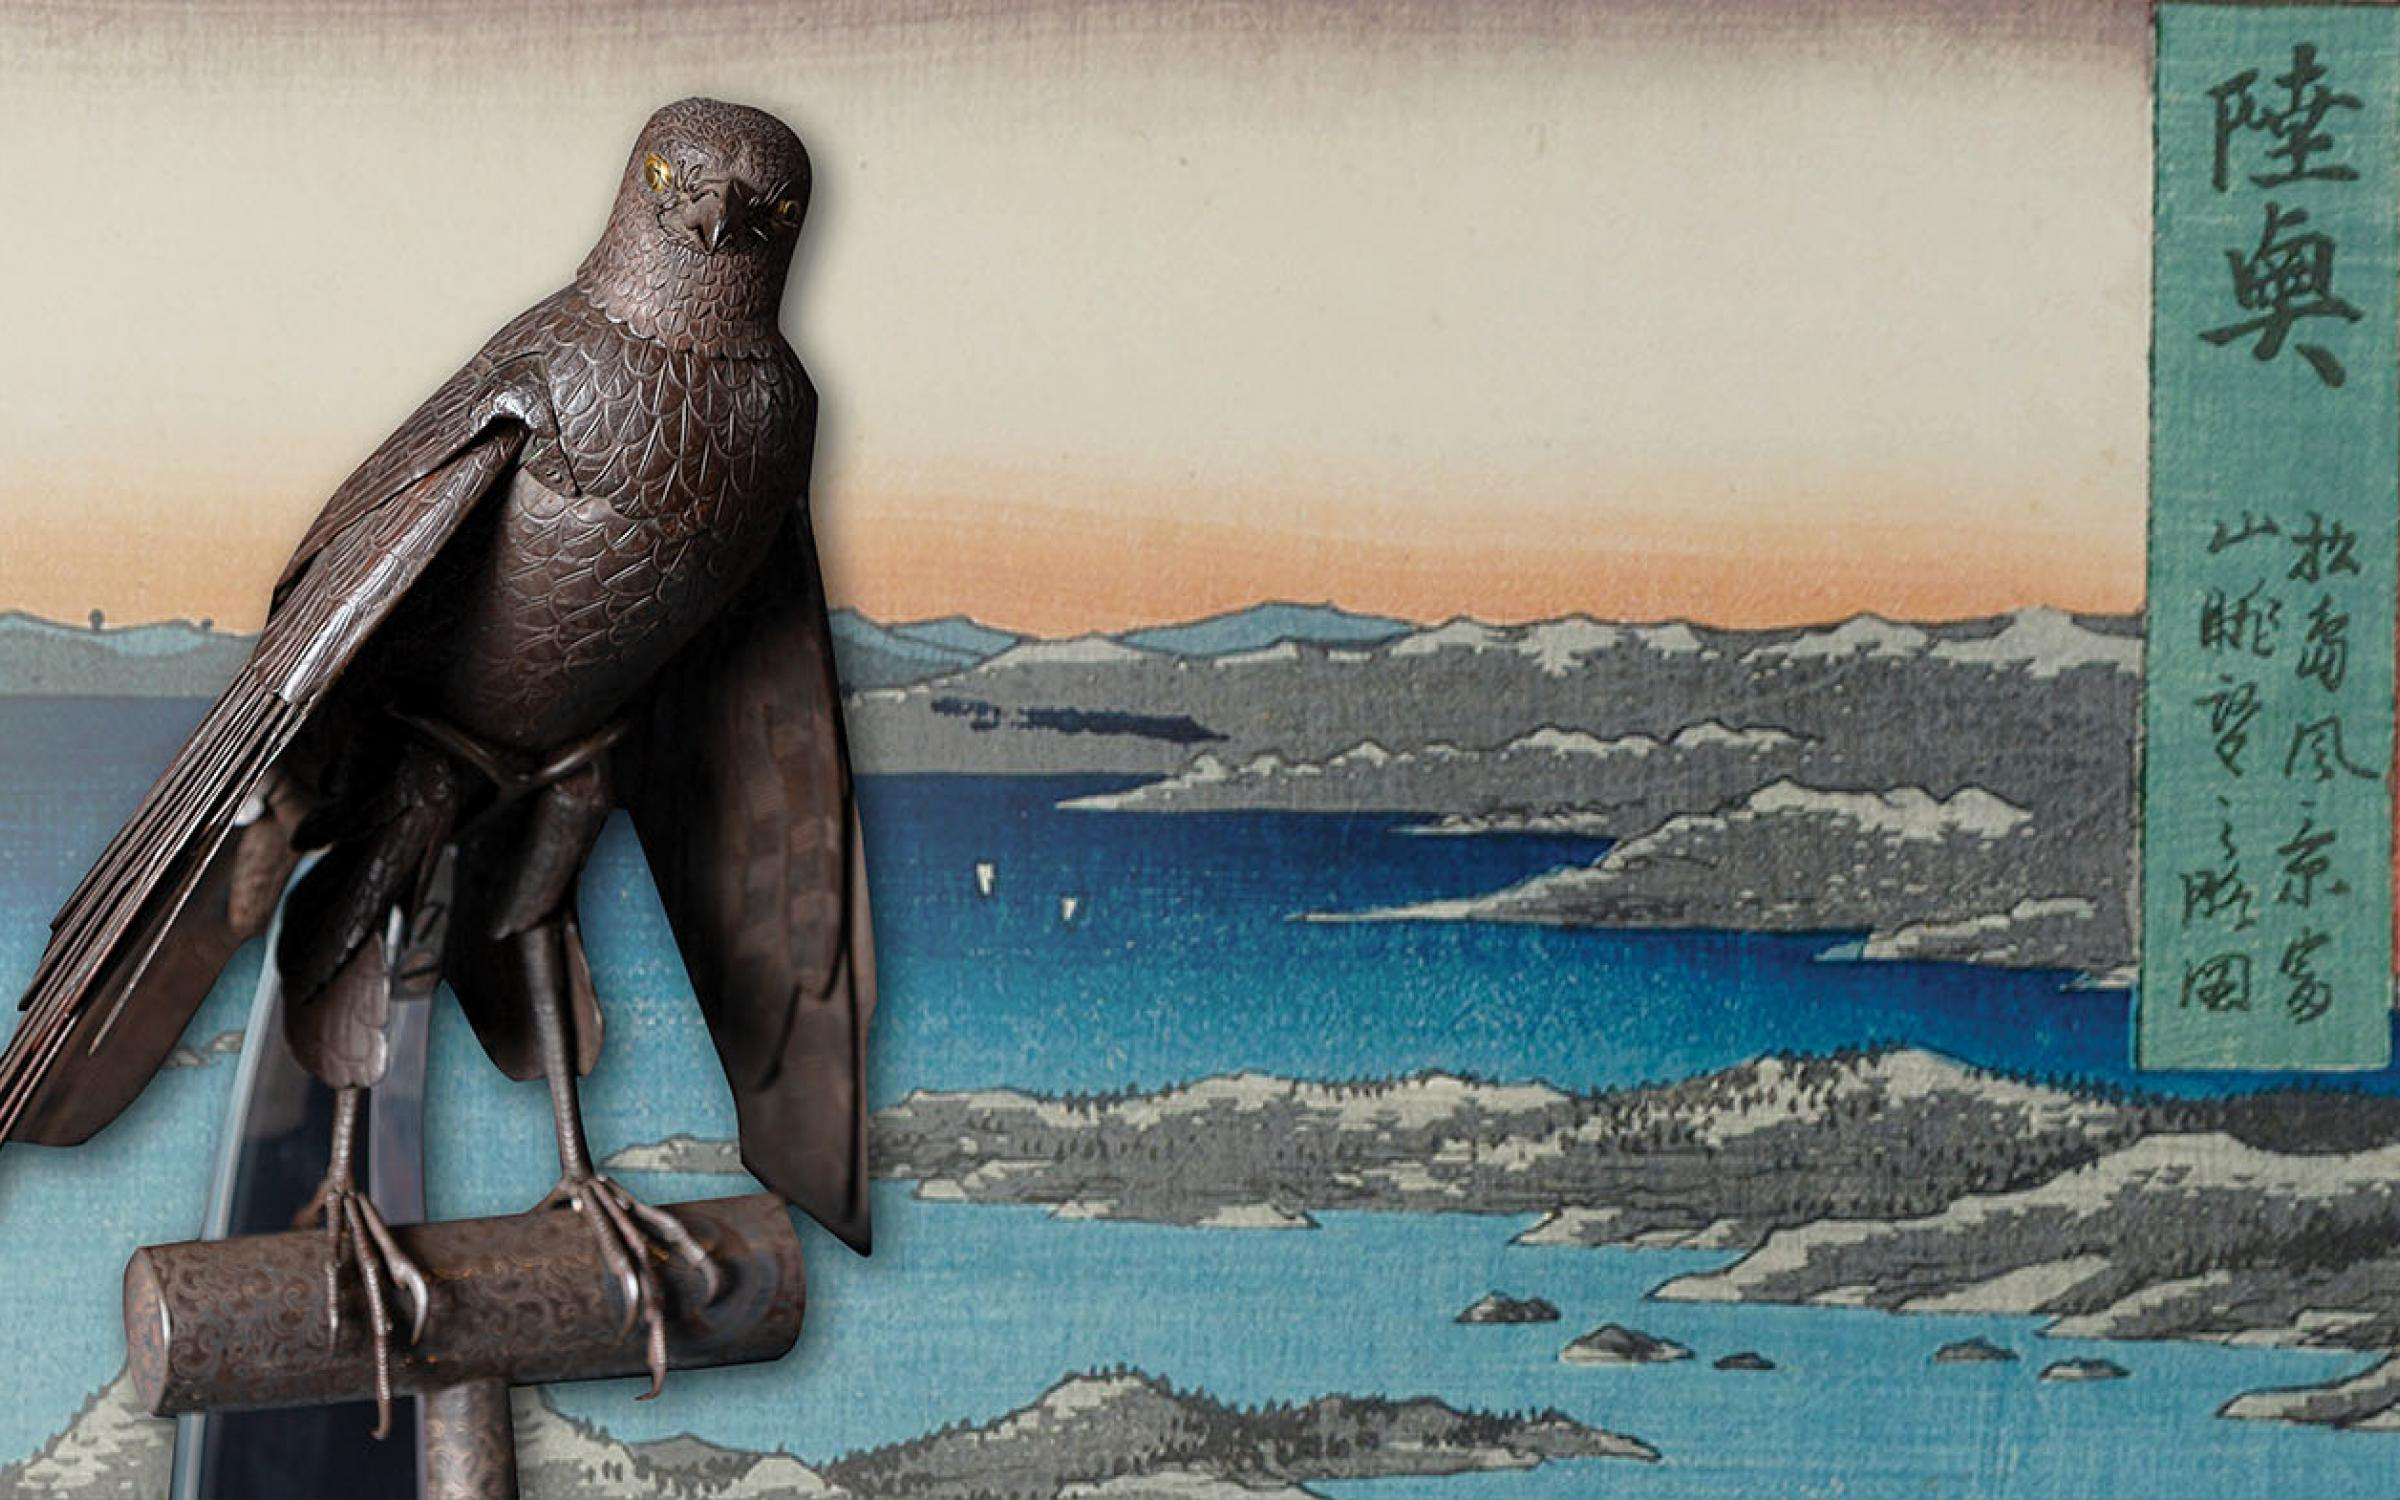 Japanese print of a sea shore and with gray hills with a metal raptor sculpture cut out on top